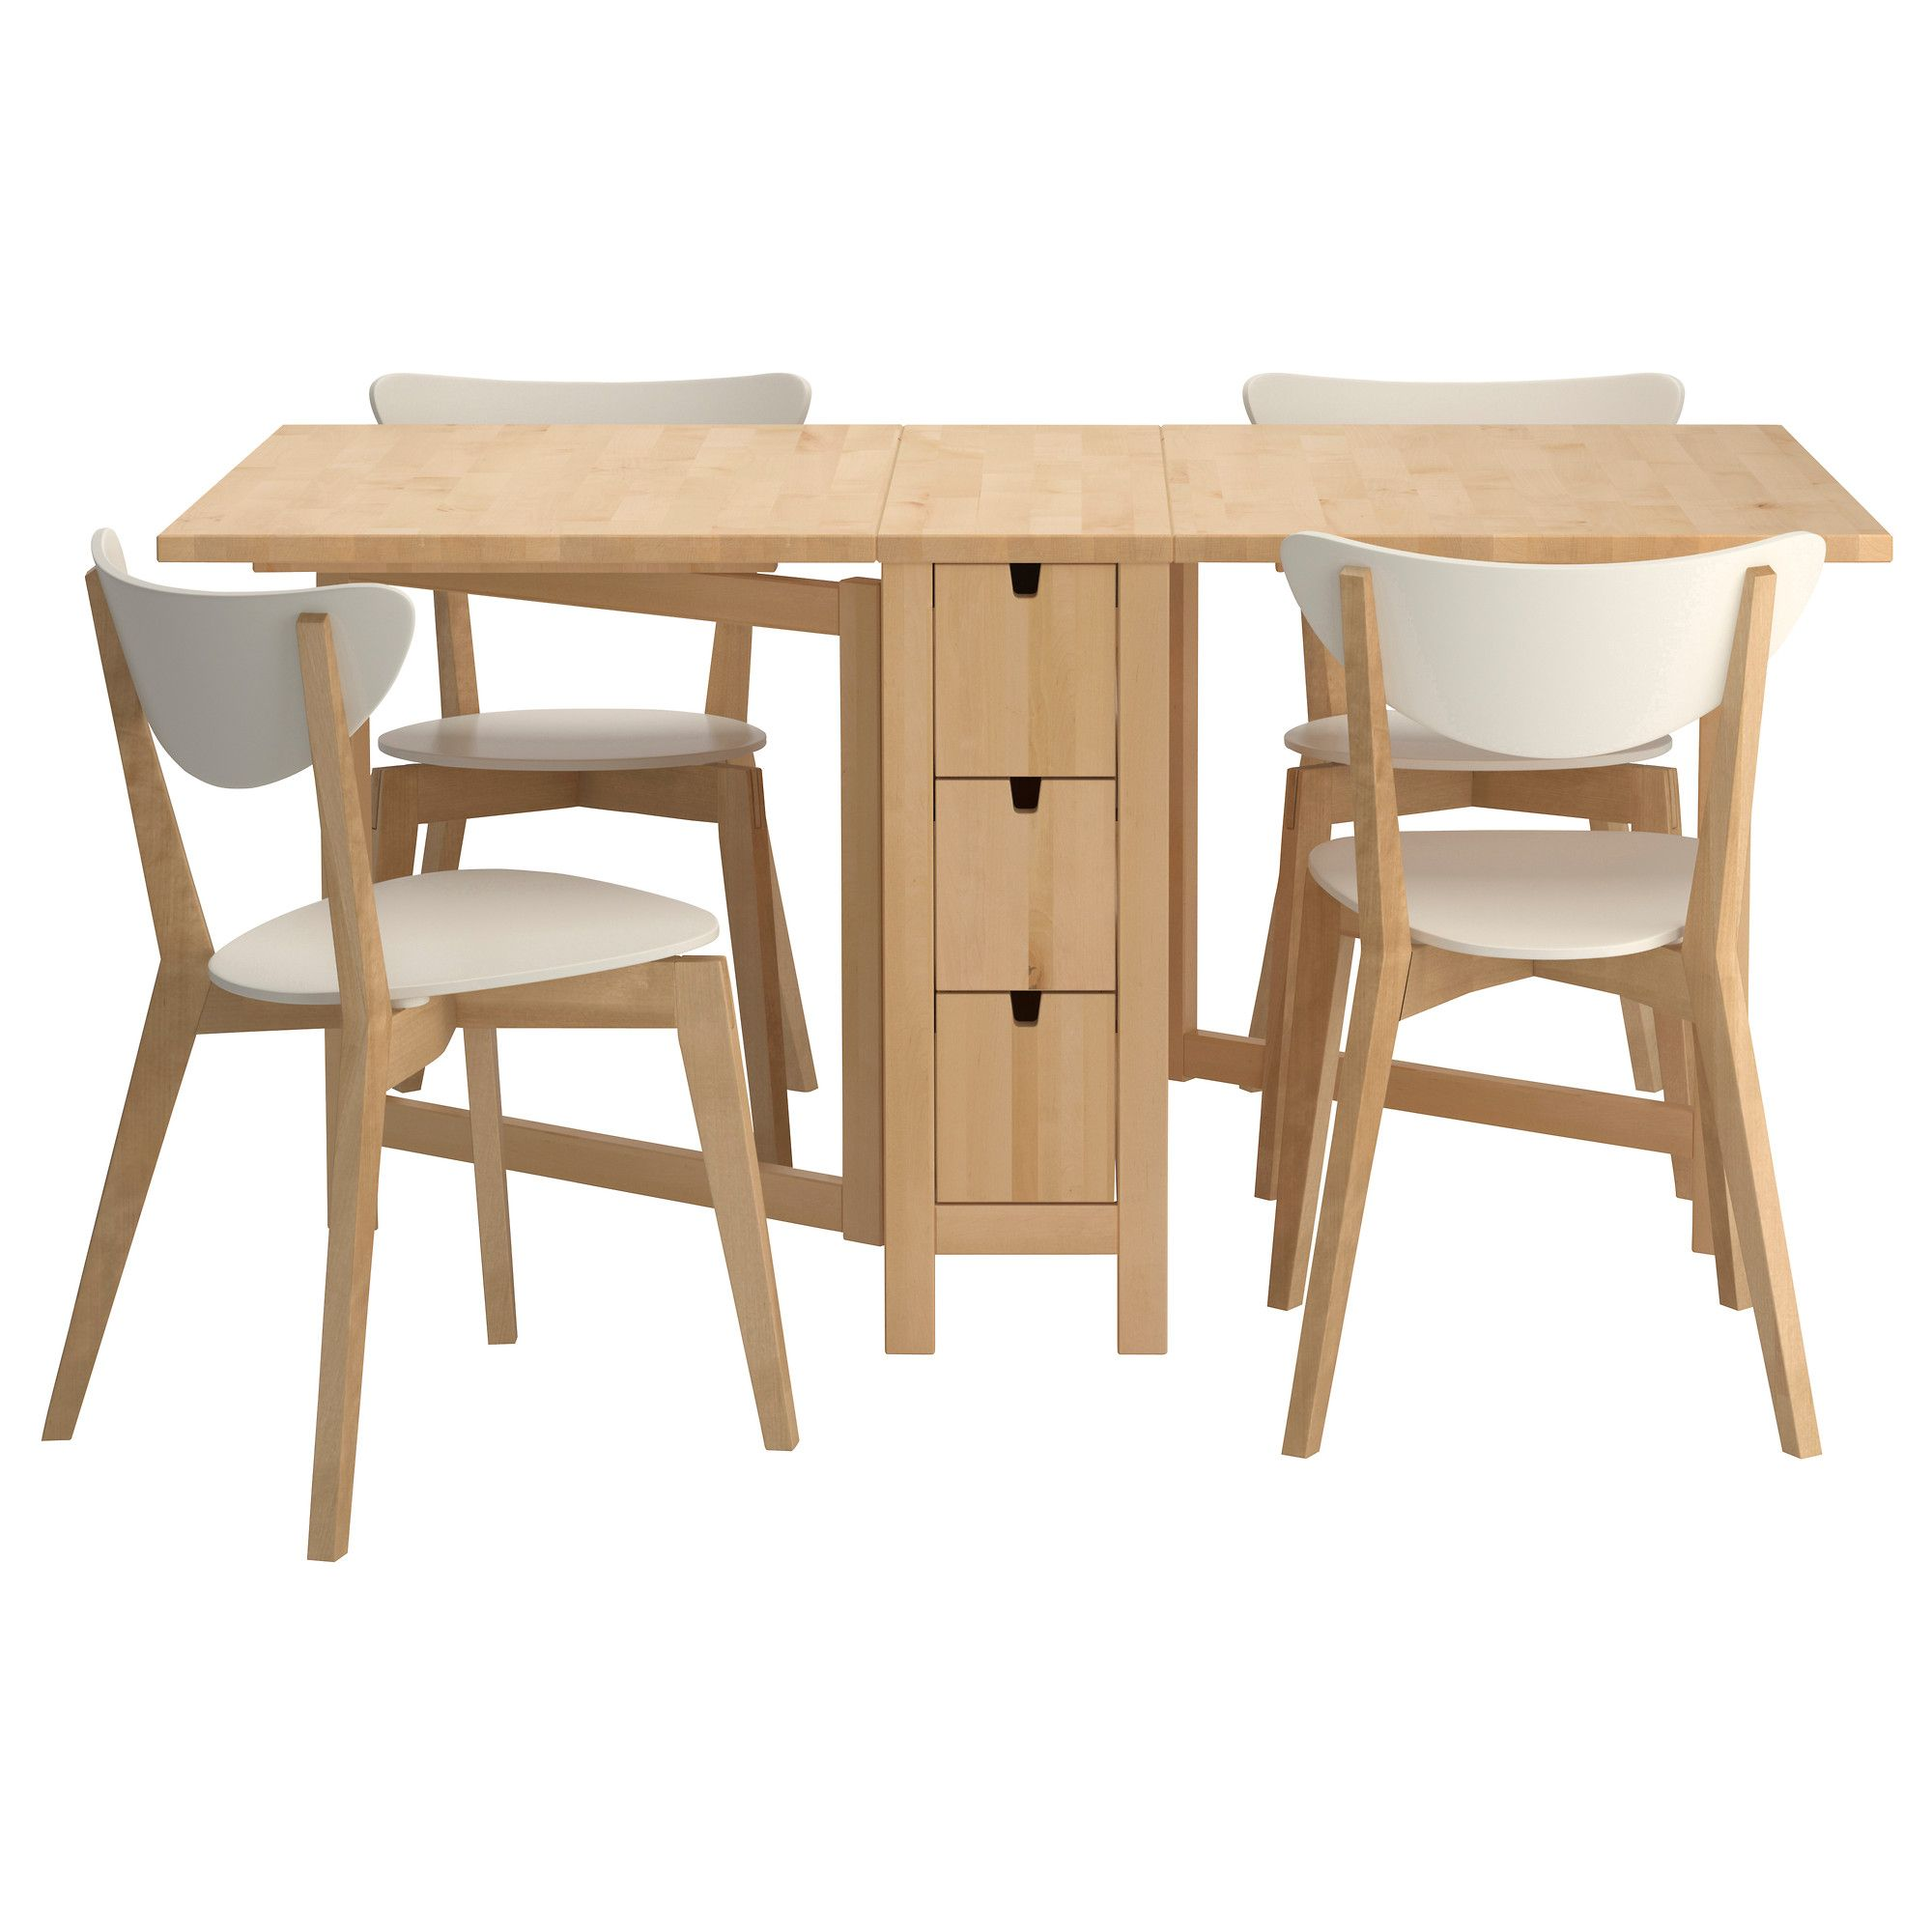 Norden nordmyra table and 4 chairs ikea for the love for Mini dining table designs